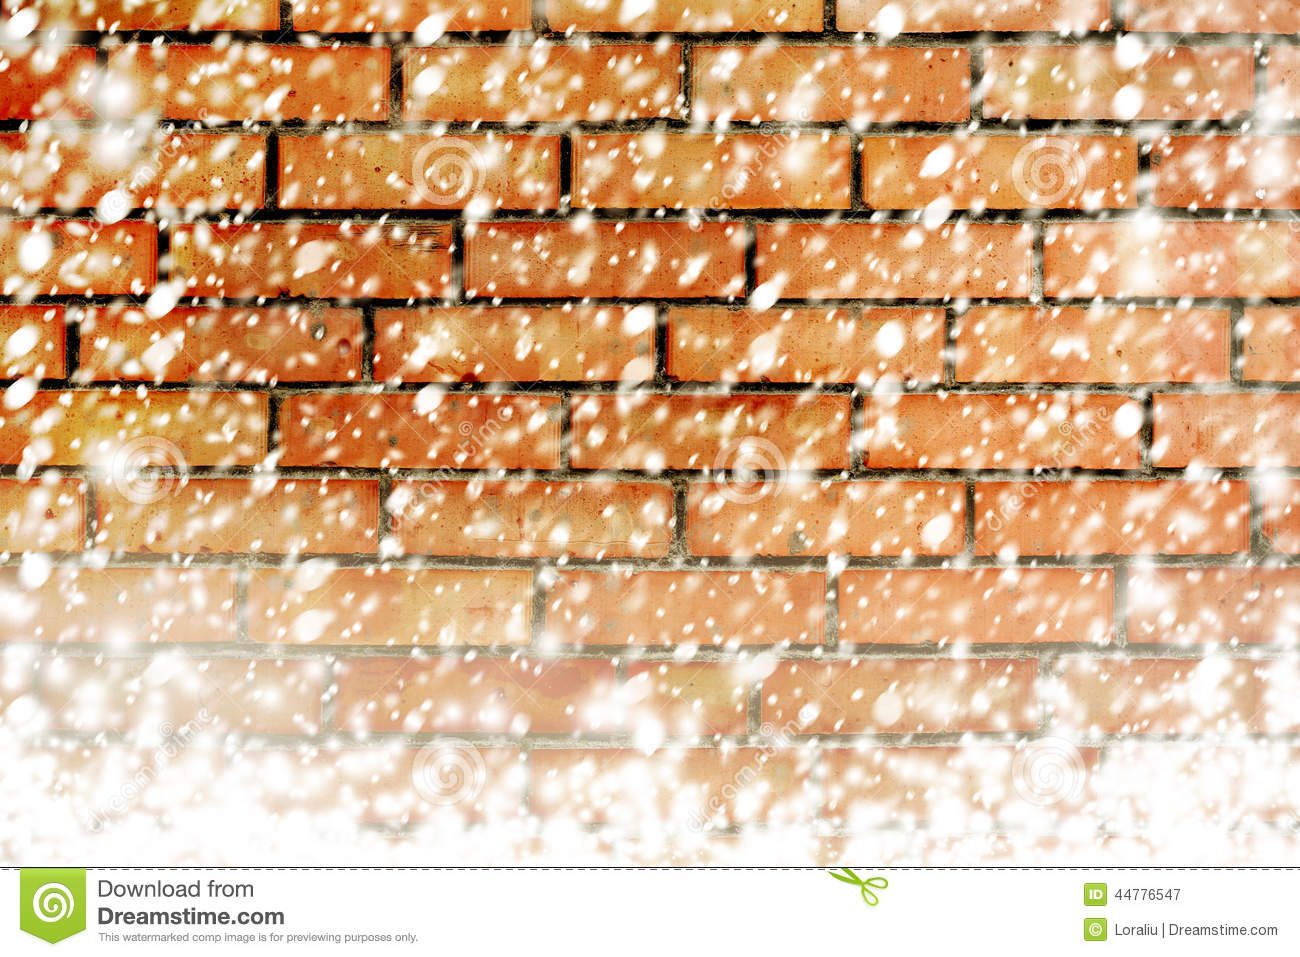 Texture of brick wall with white snow flakes